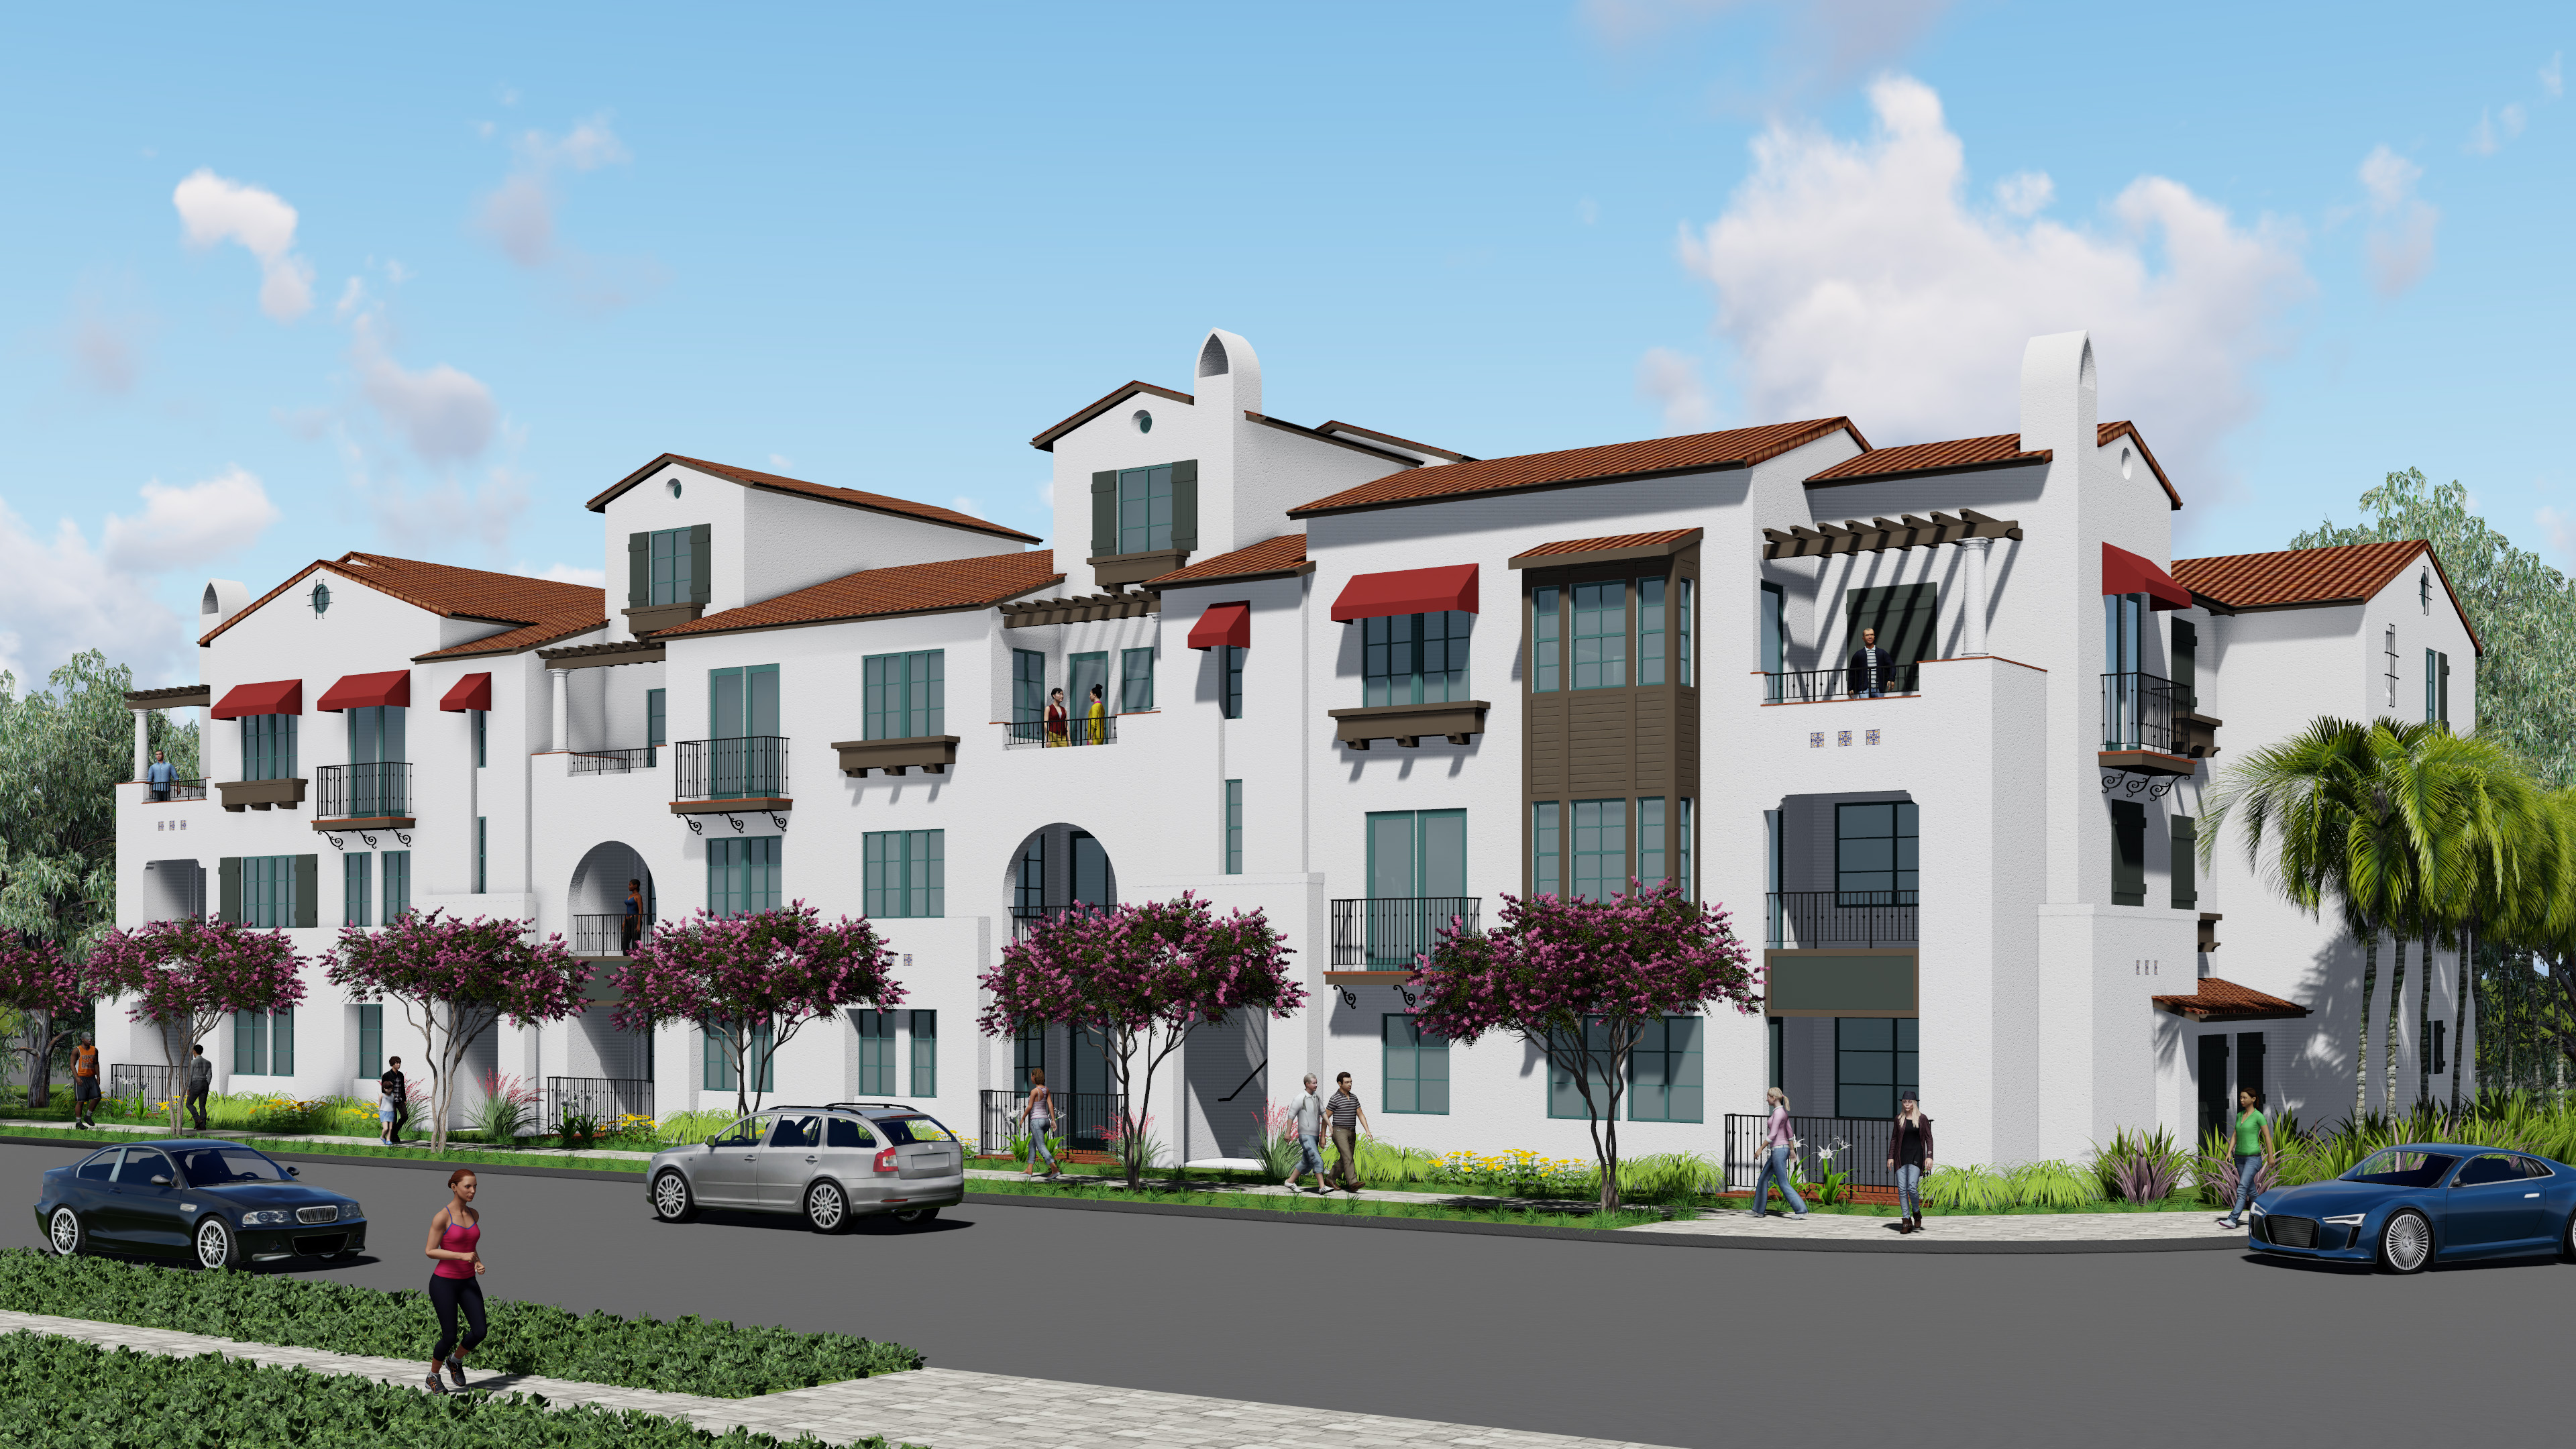 With The Monterey in Corona, SRG Residential Expands Presence in Riverside County